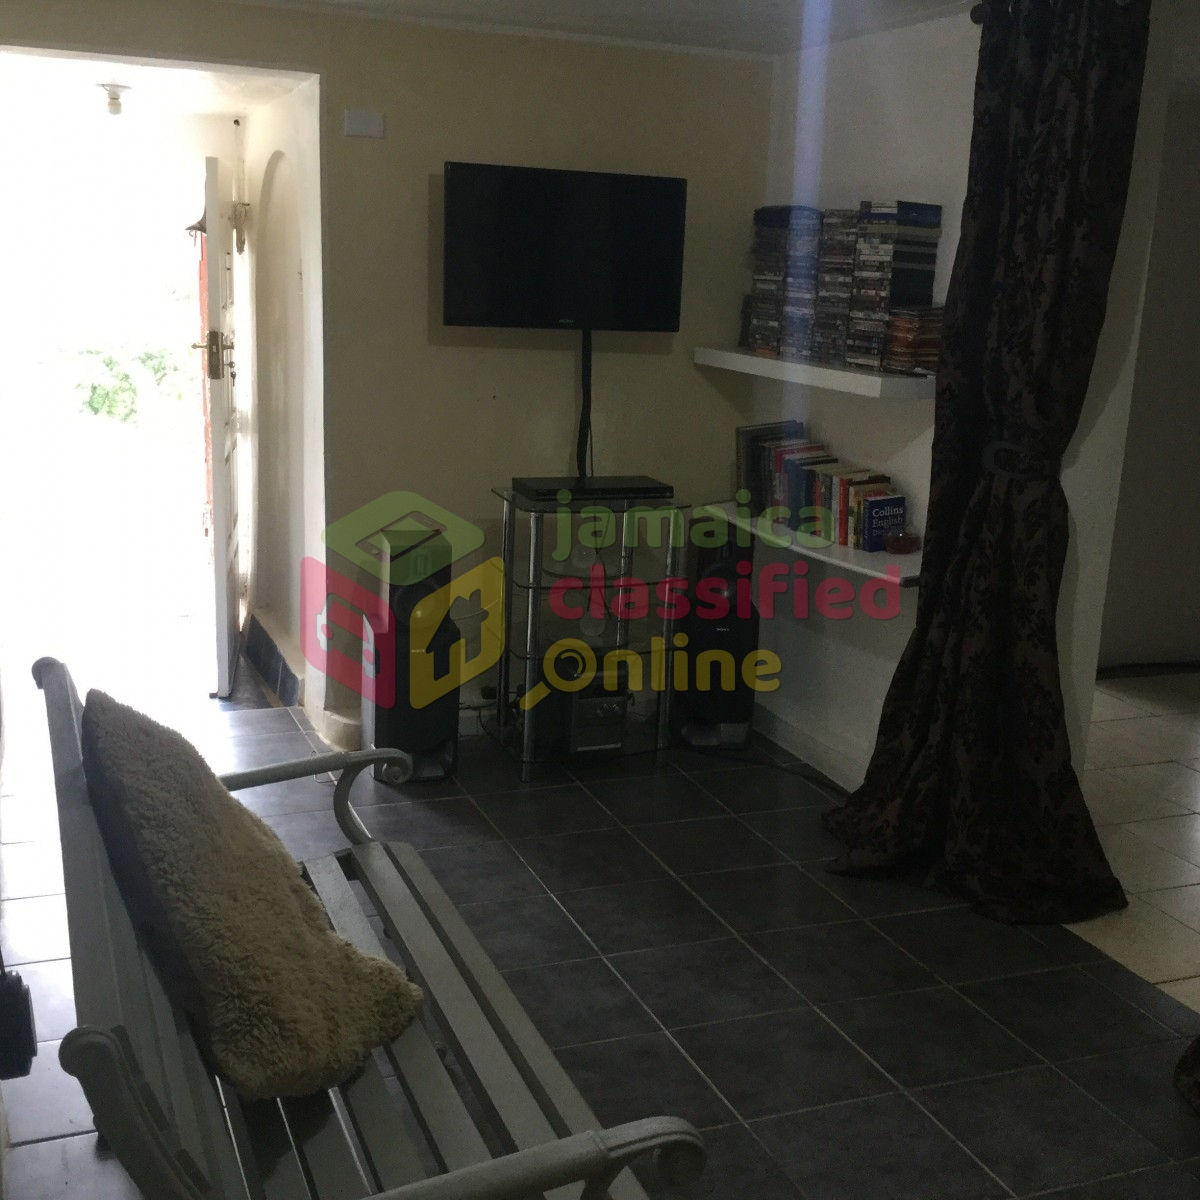 House For Rent Website: 1 Bedroom Self Contained Studio Apartment For Rent In